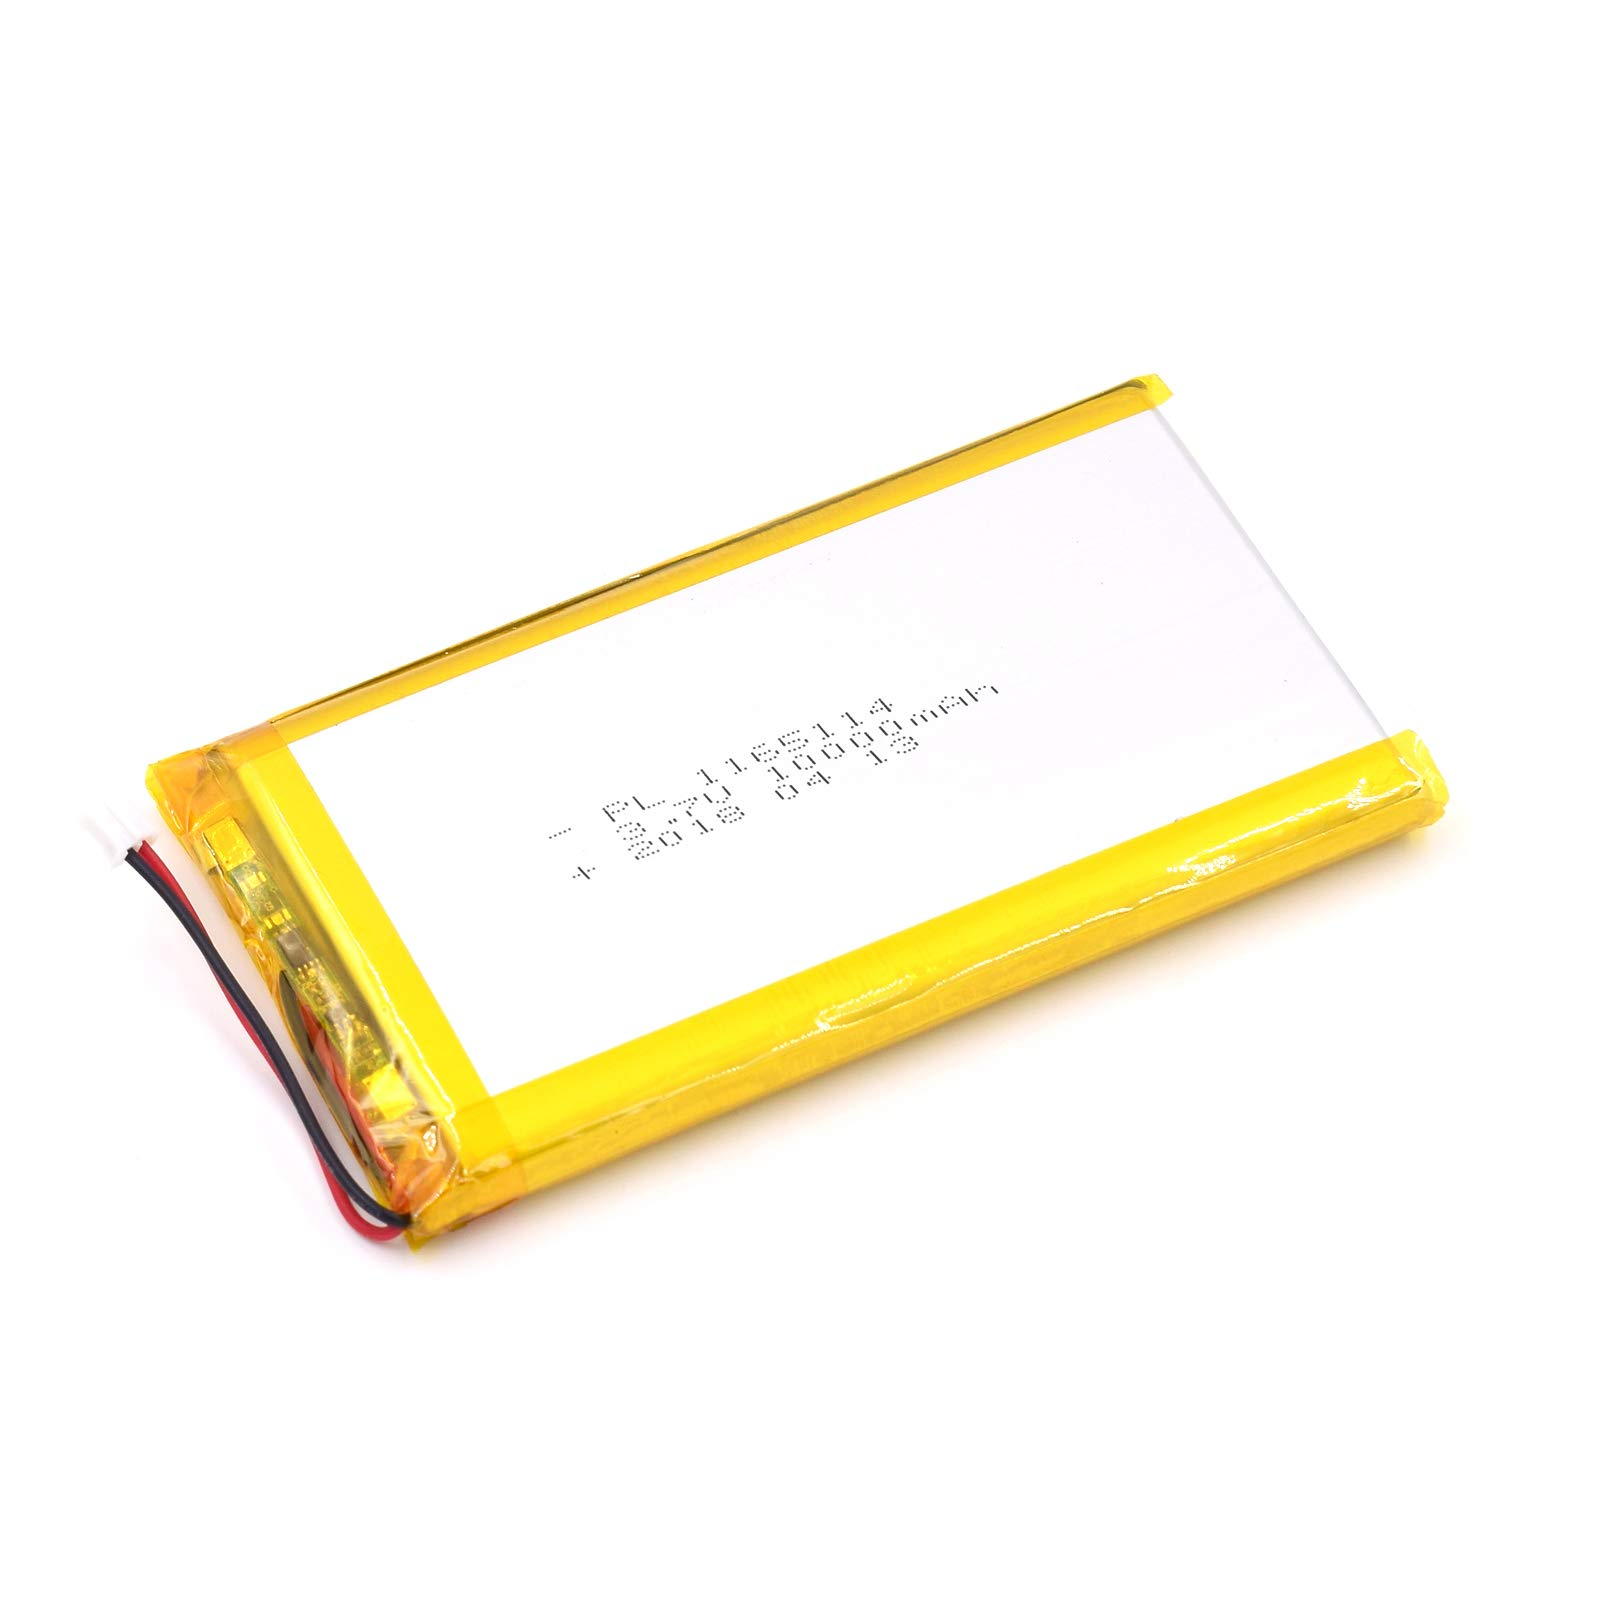 3.7V 10000mAh 1165114 Lipo Battery Rechargeable Lithium Polymer ion Battery Pack with JST Connector by YDL